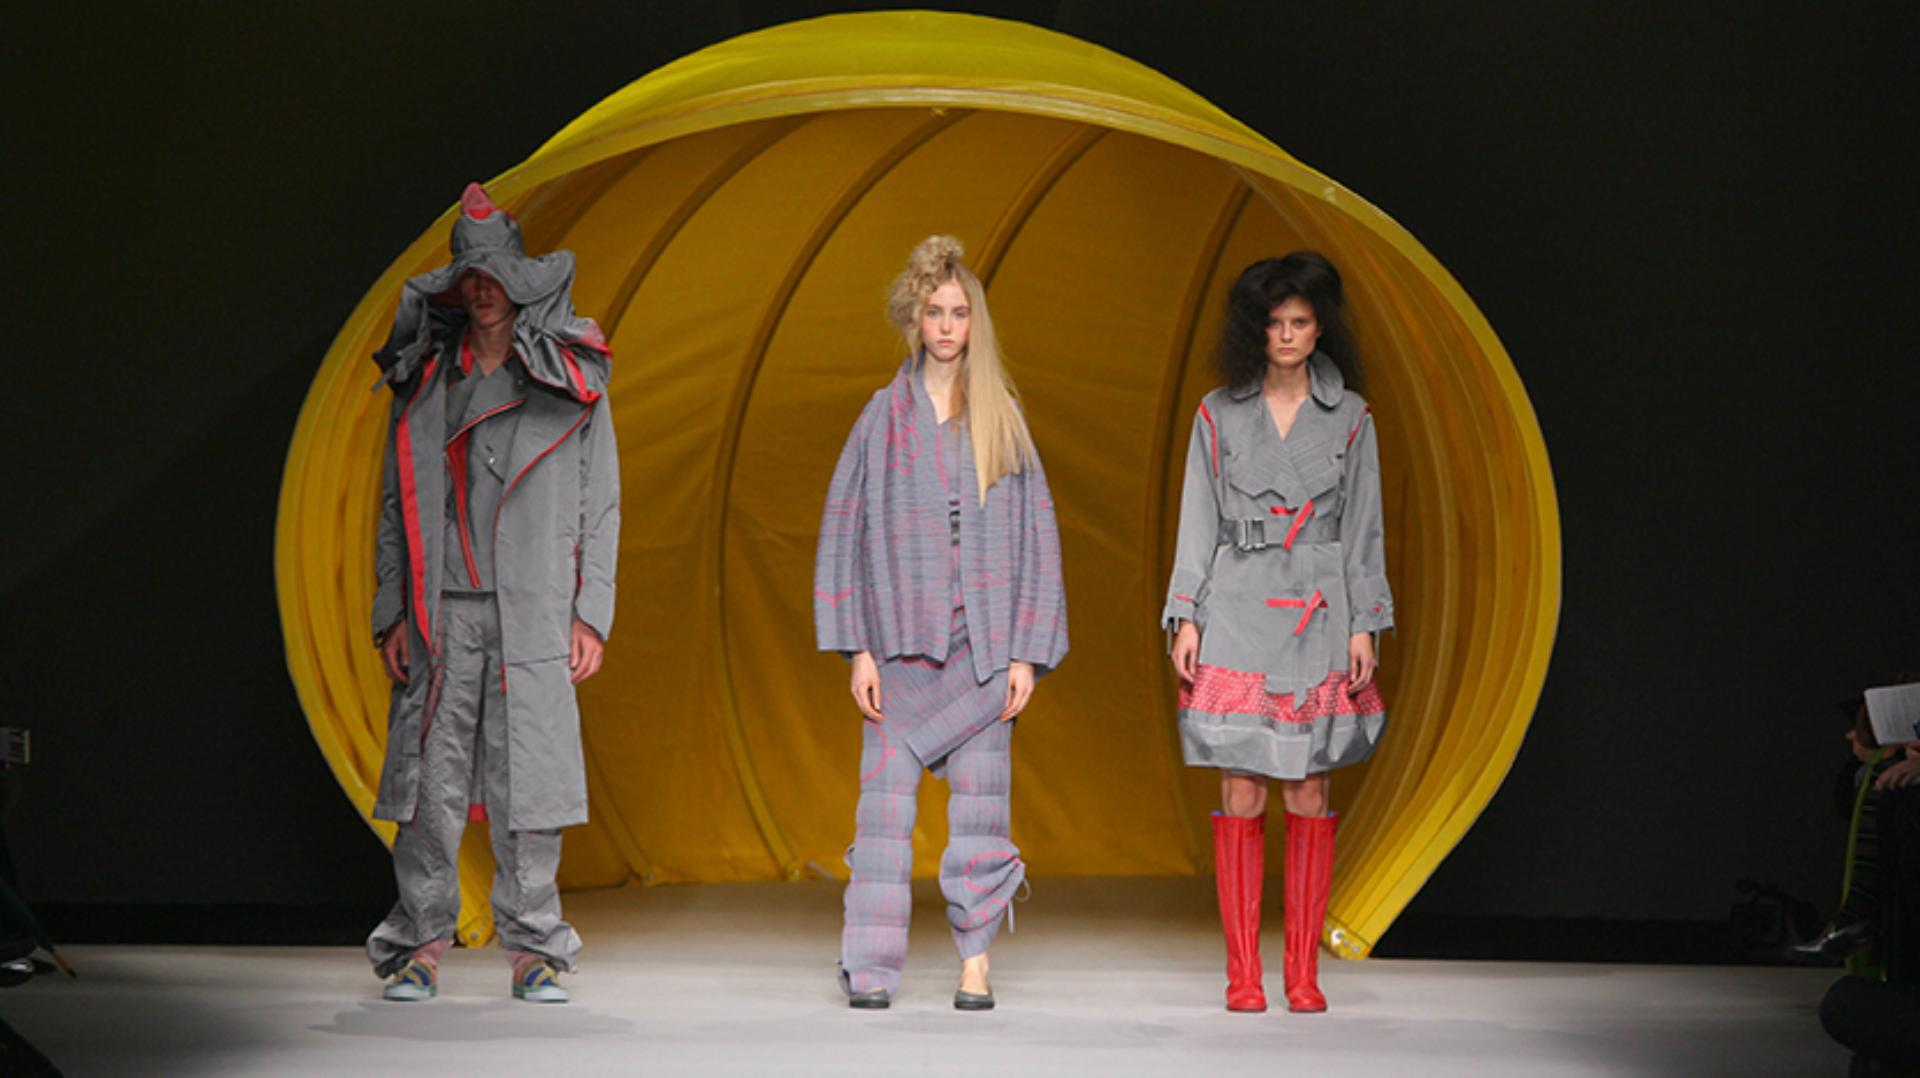 Models emerging from a giant yellow hose in Dyson vacuum-inspired designs onto the runaway